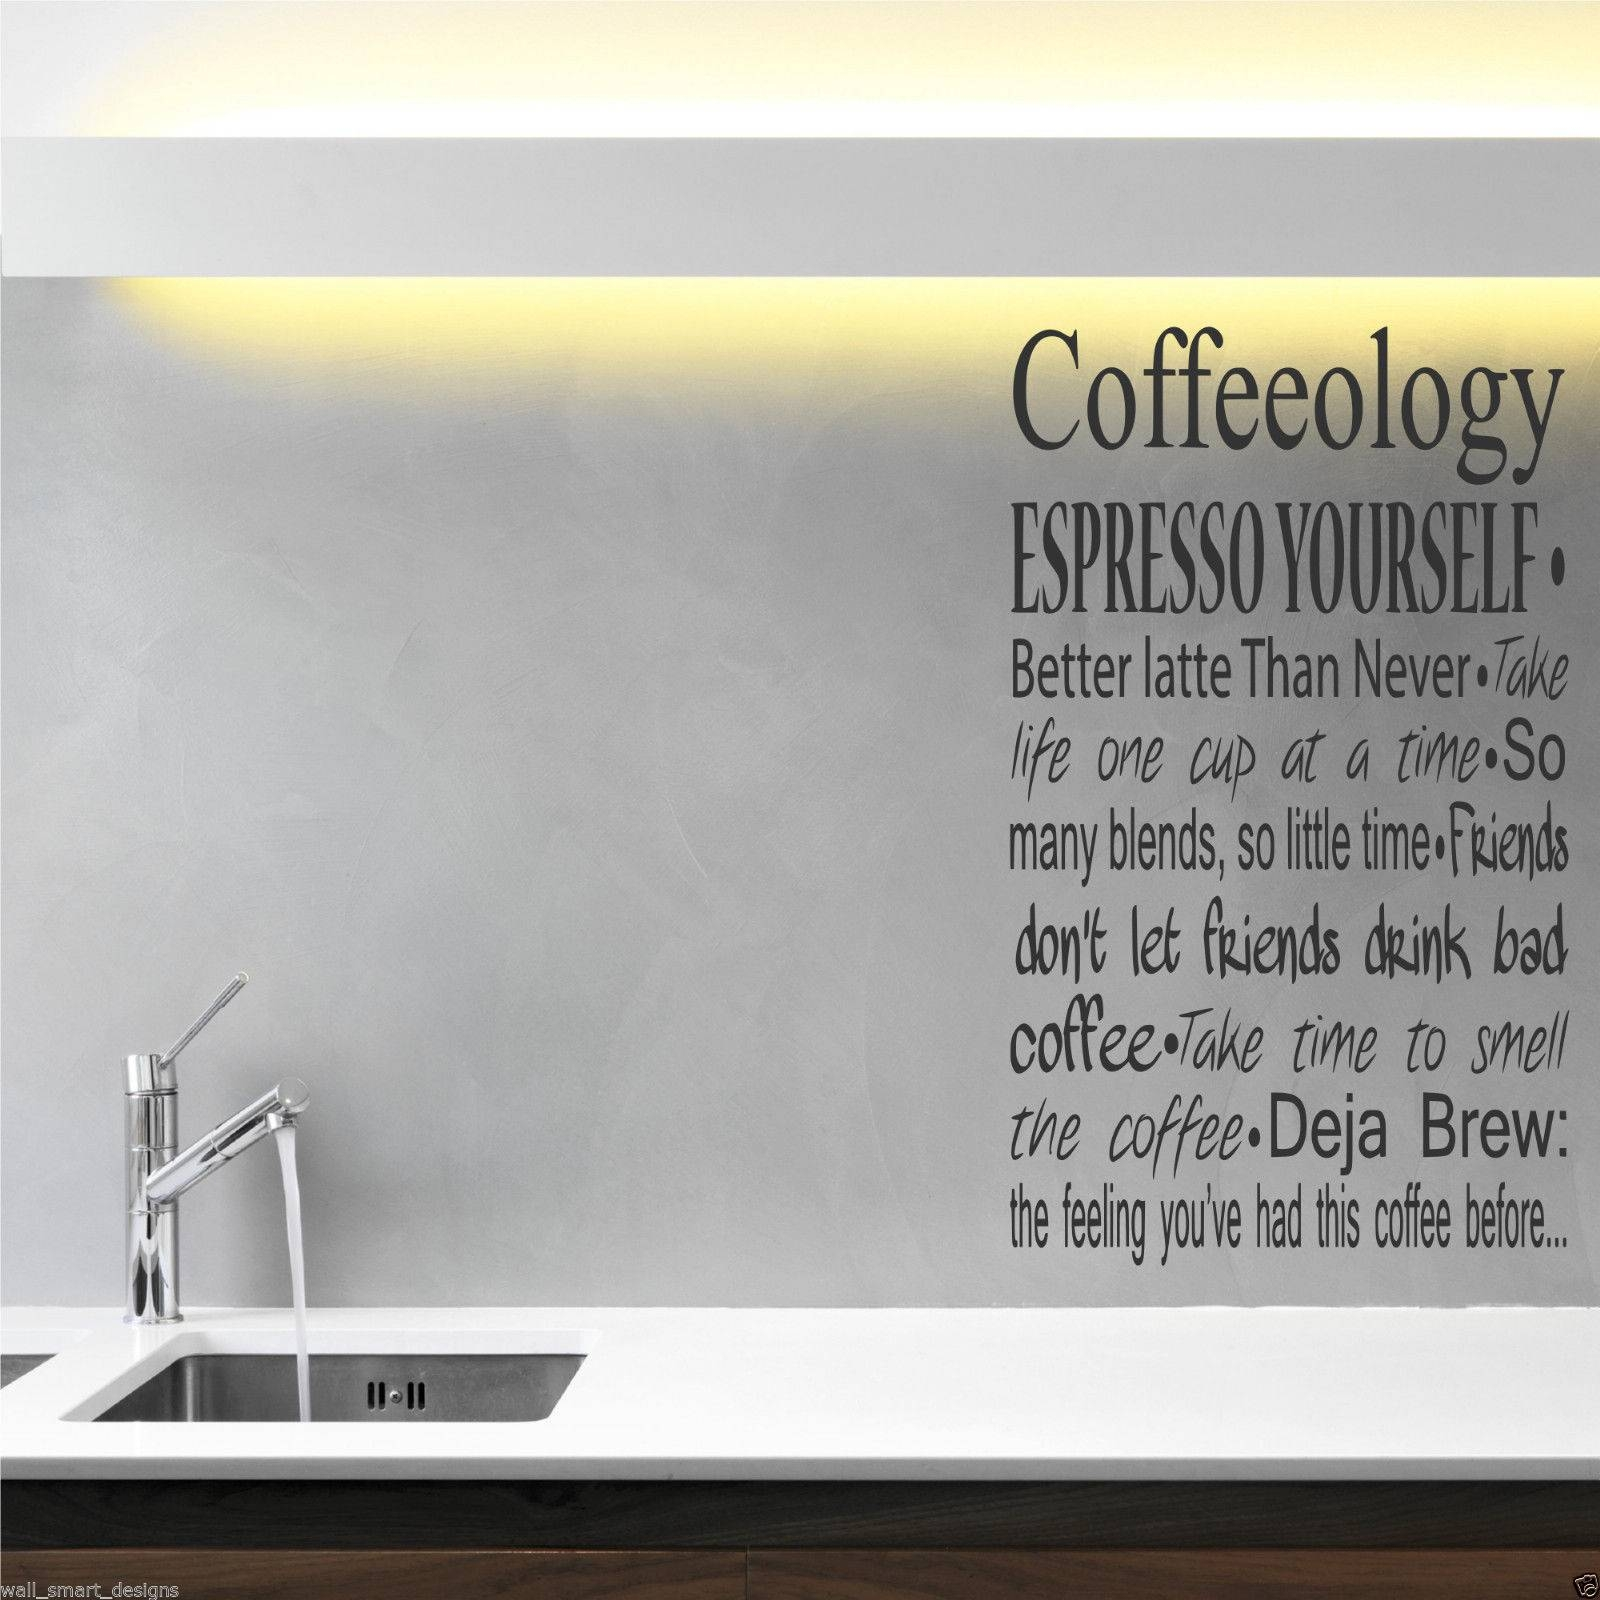 Kitchen Wall Decor Bed Bath And Beyond: 30 Best Collection Of Cafe Latte Kitchen Wall Art